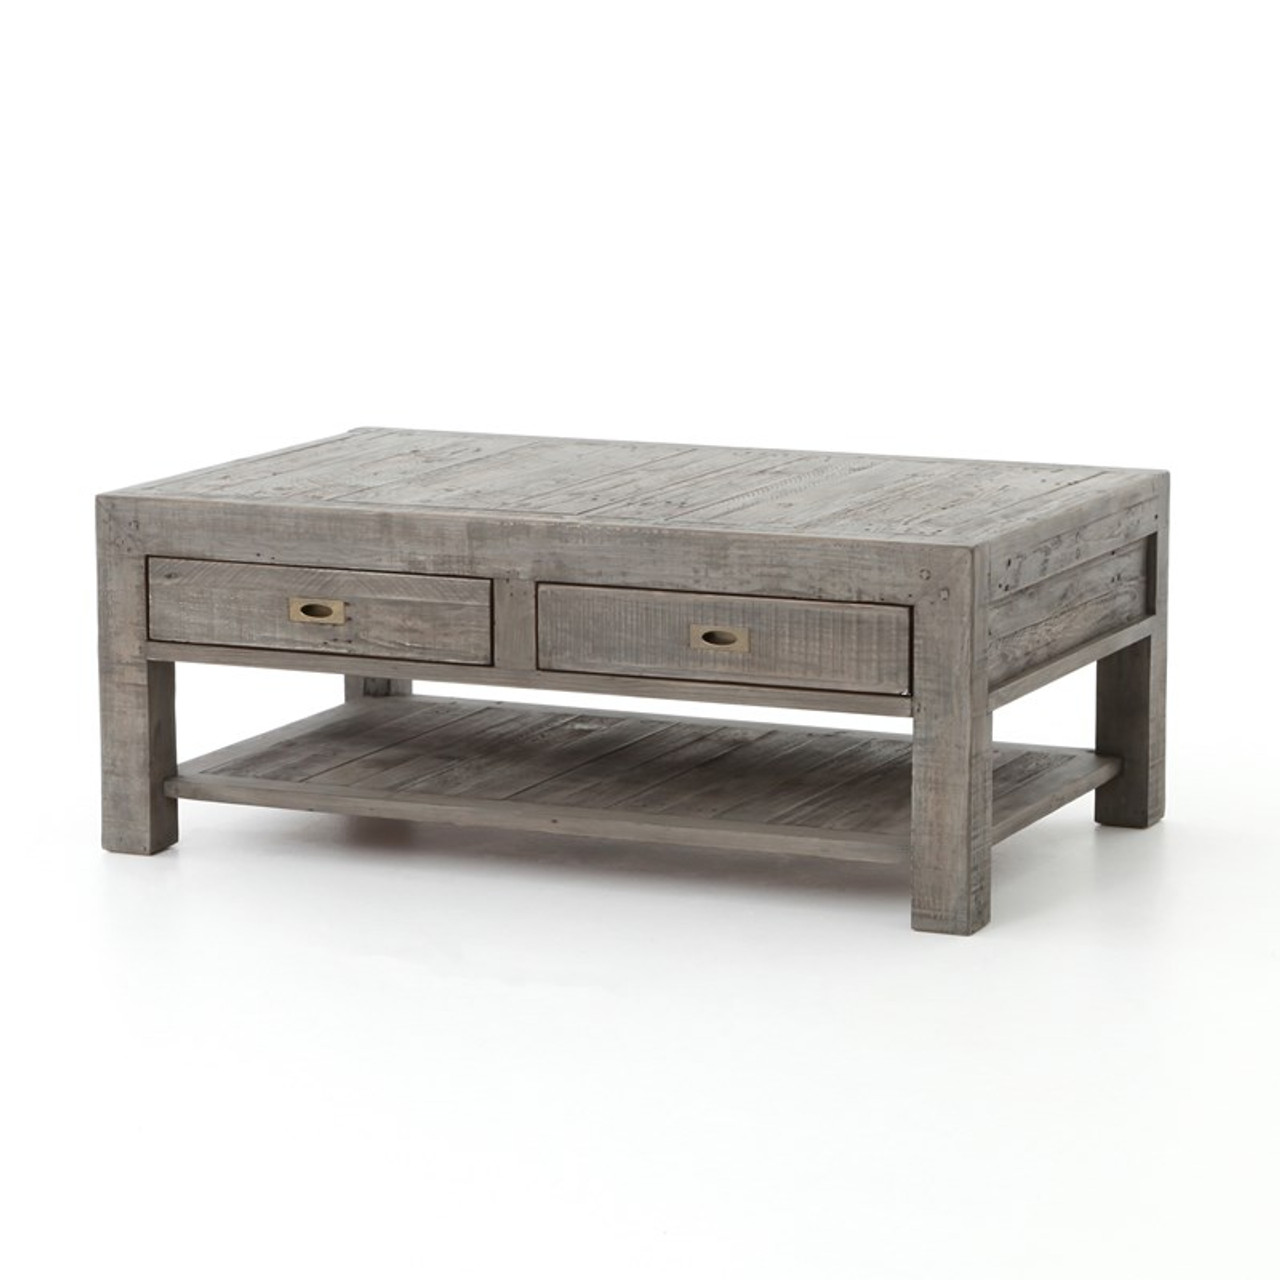 Charming Parsons Reclaimed Wood Coffee Table With 2 Drawers   Grey